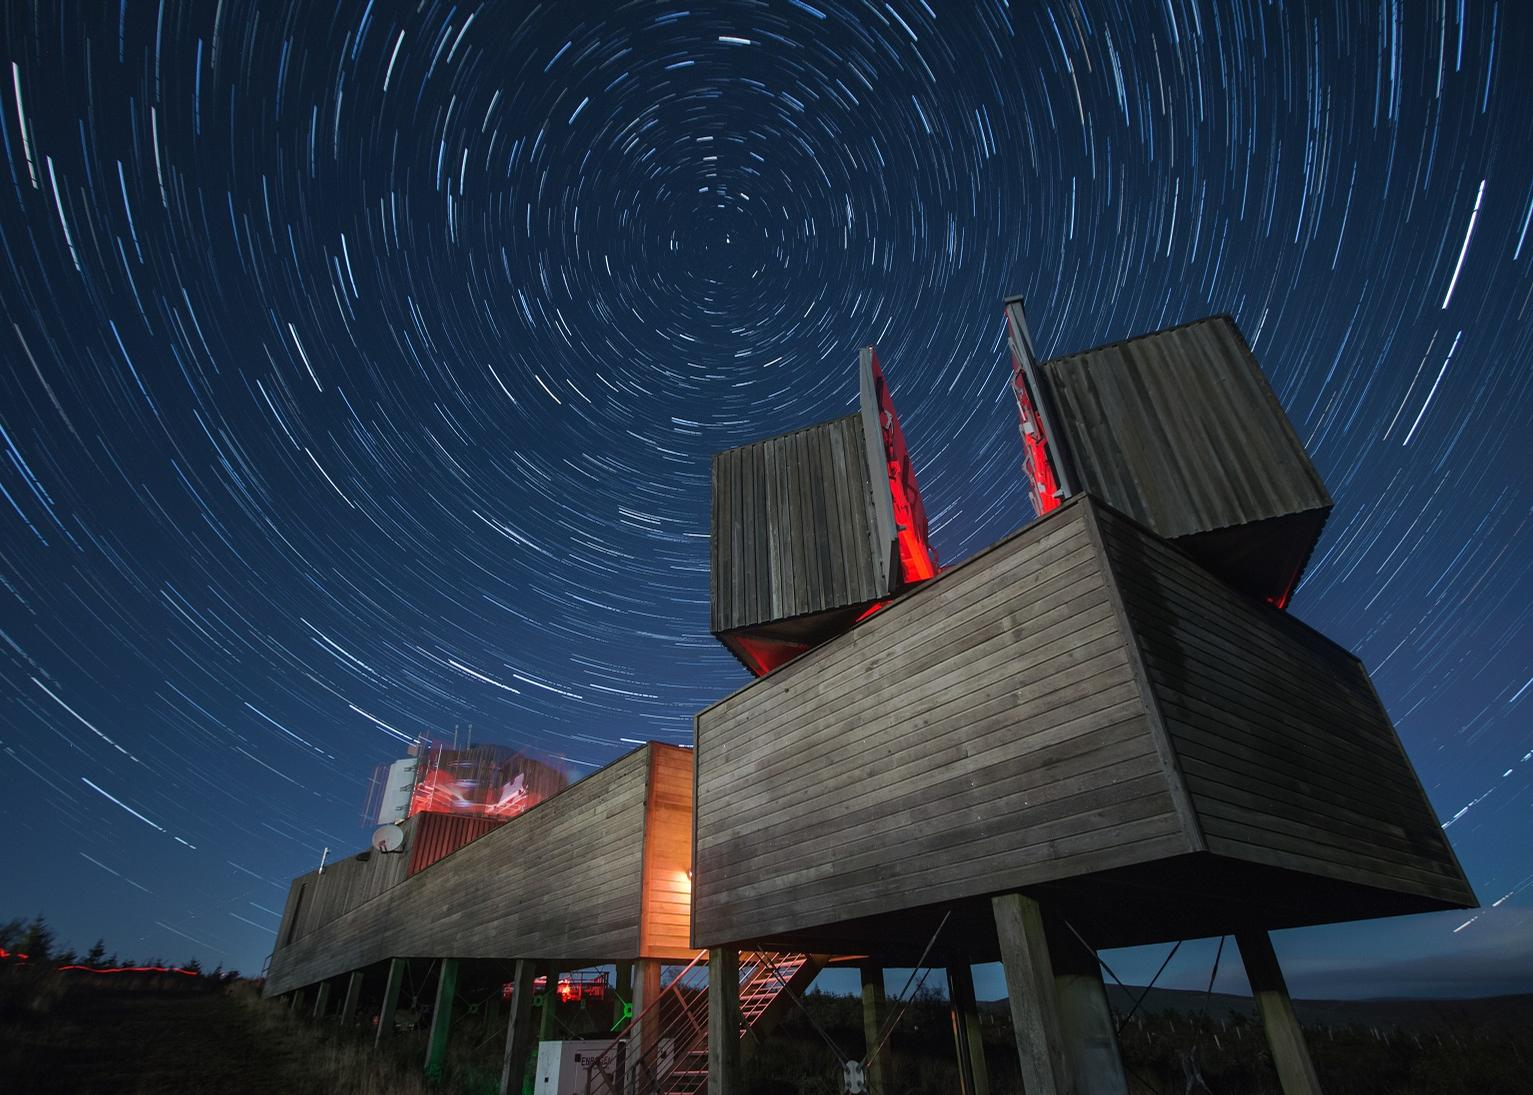 The planetarium will mean Kielder Observatory will now offer visitors activities during the daytime, as well as on cloudy and poor visibility nights and later light summer evenings